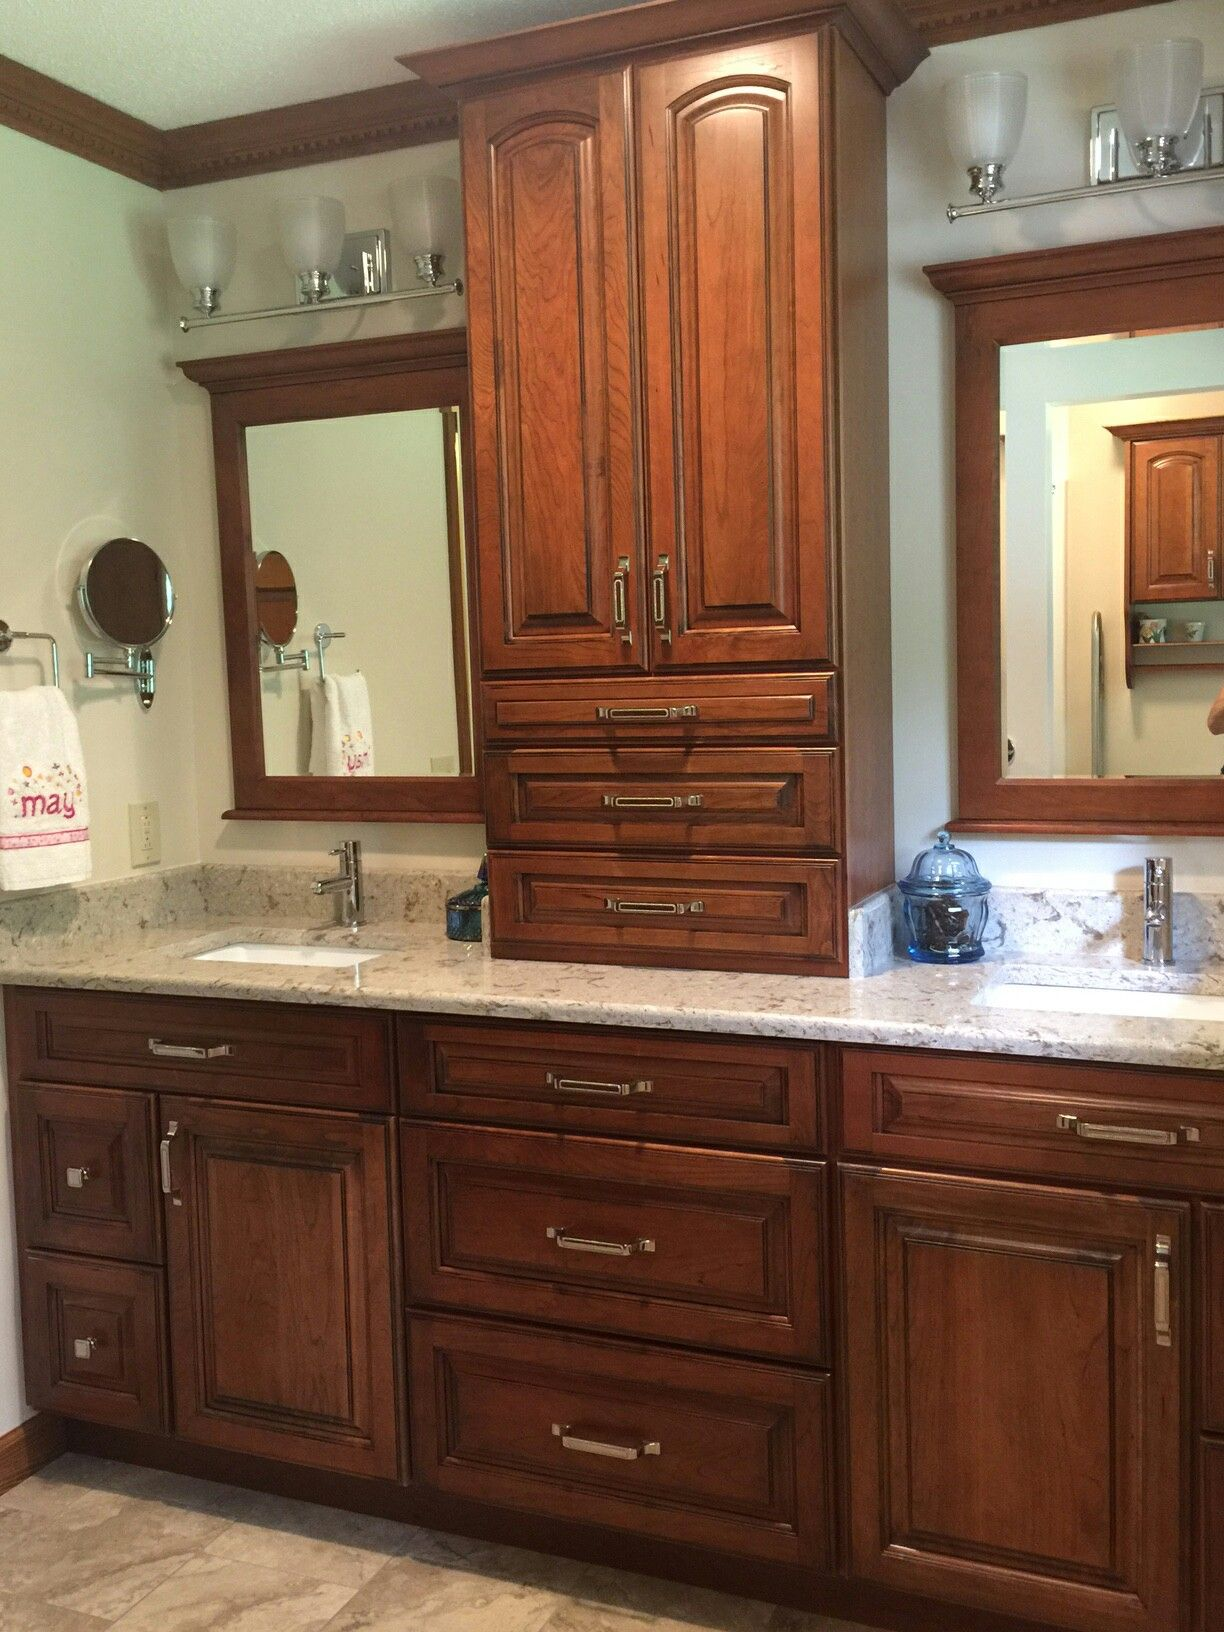 Bath Cabinets, Mirrors, And Toilet Topper Cabinets In Kemper Cabinetryu0027s  Herrington Cherry Whiskey Black